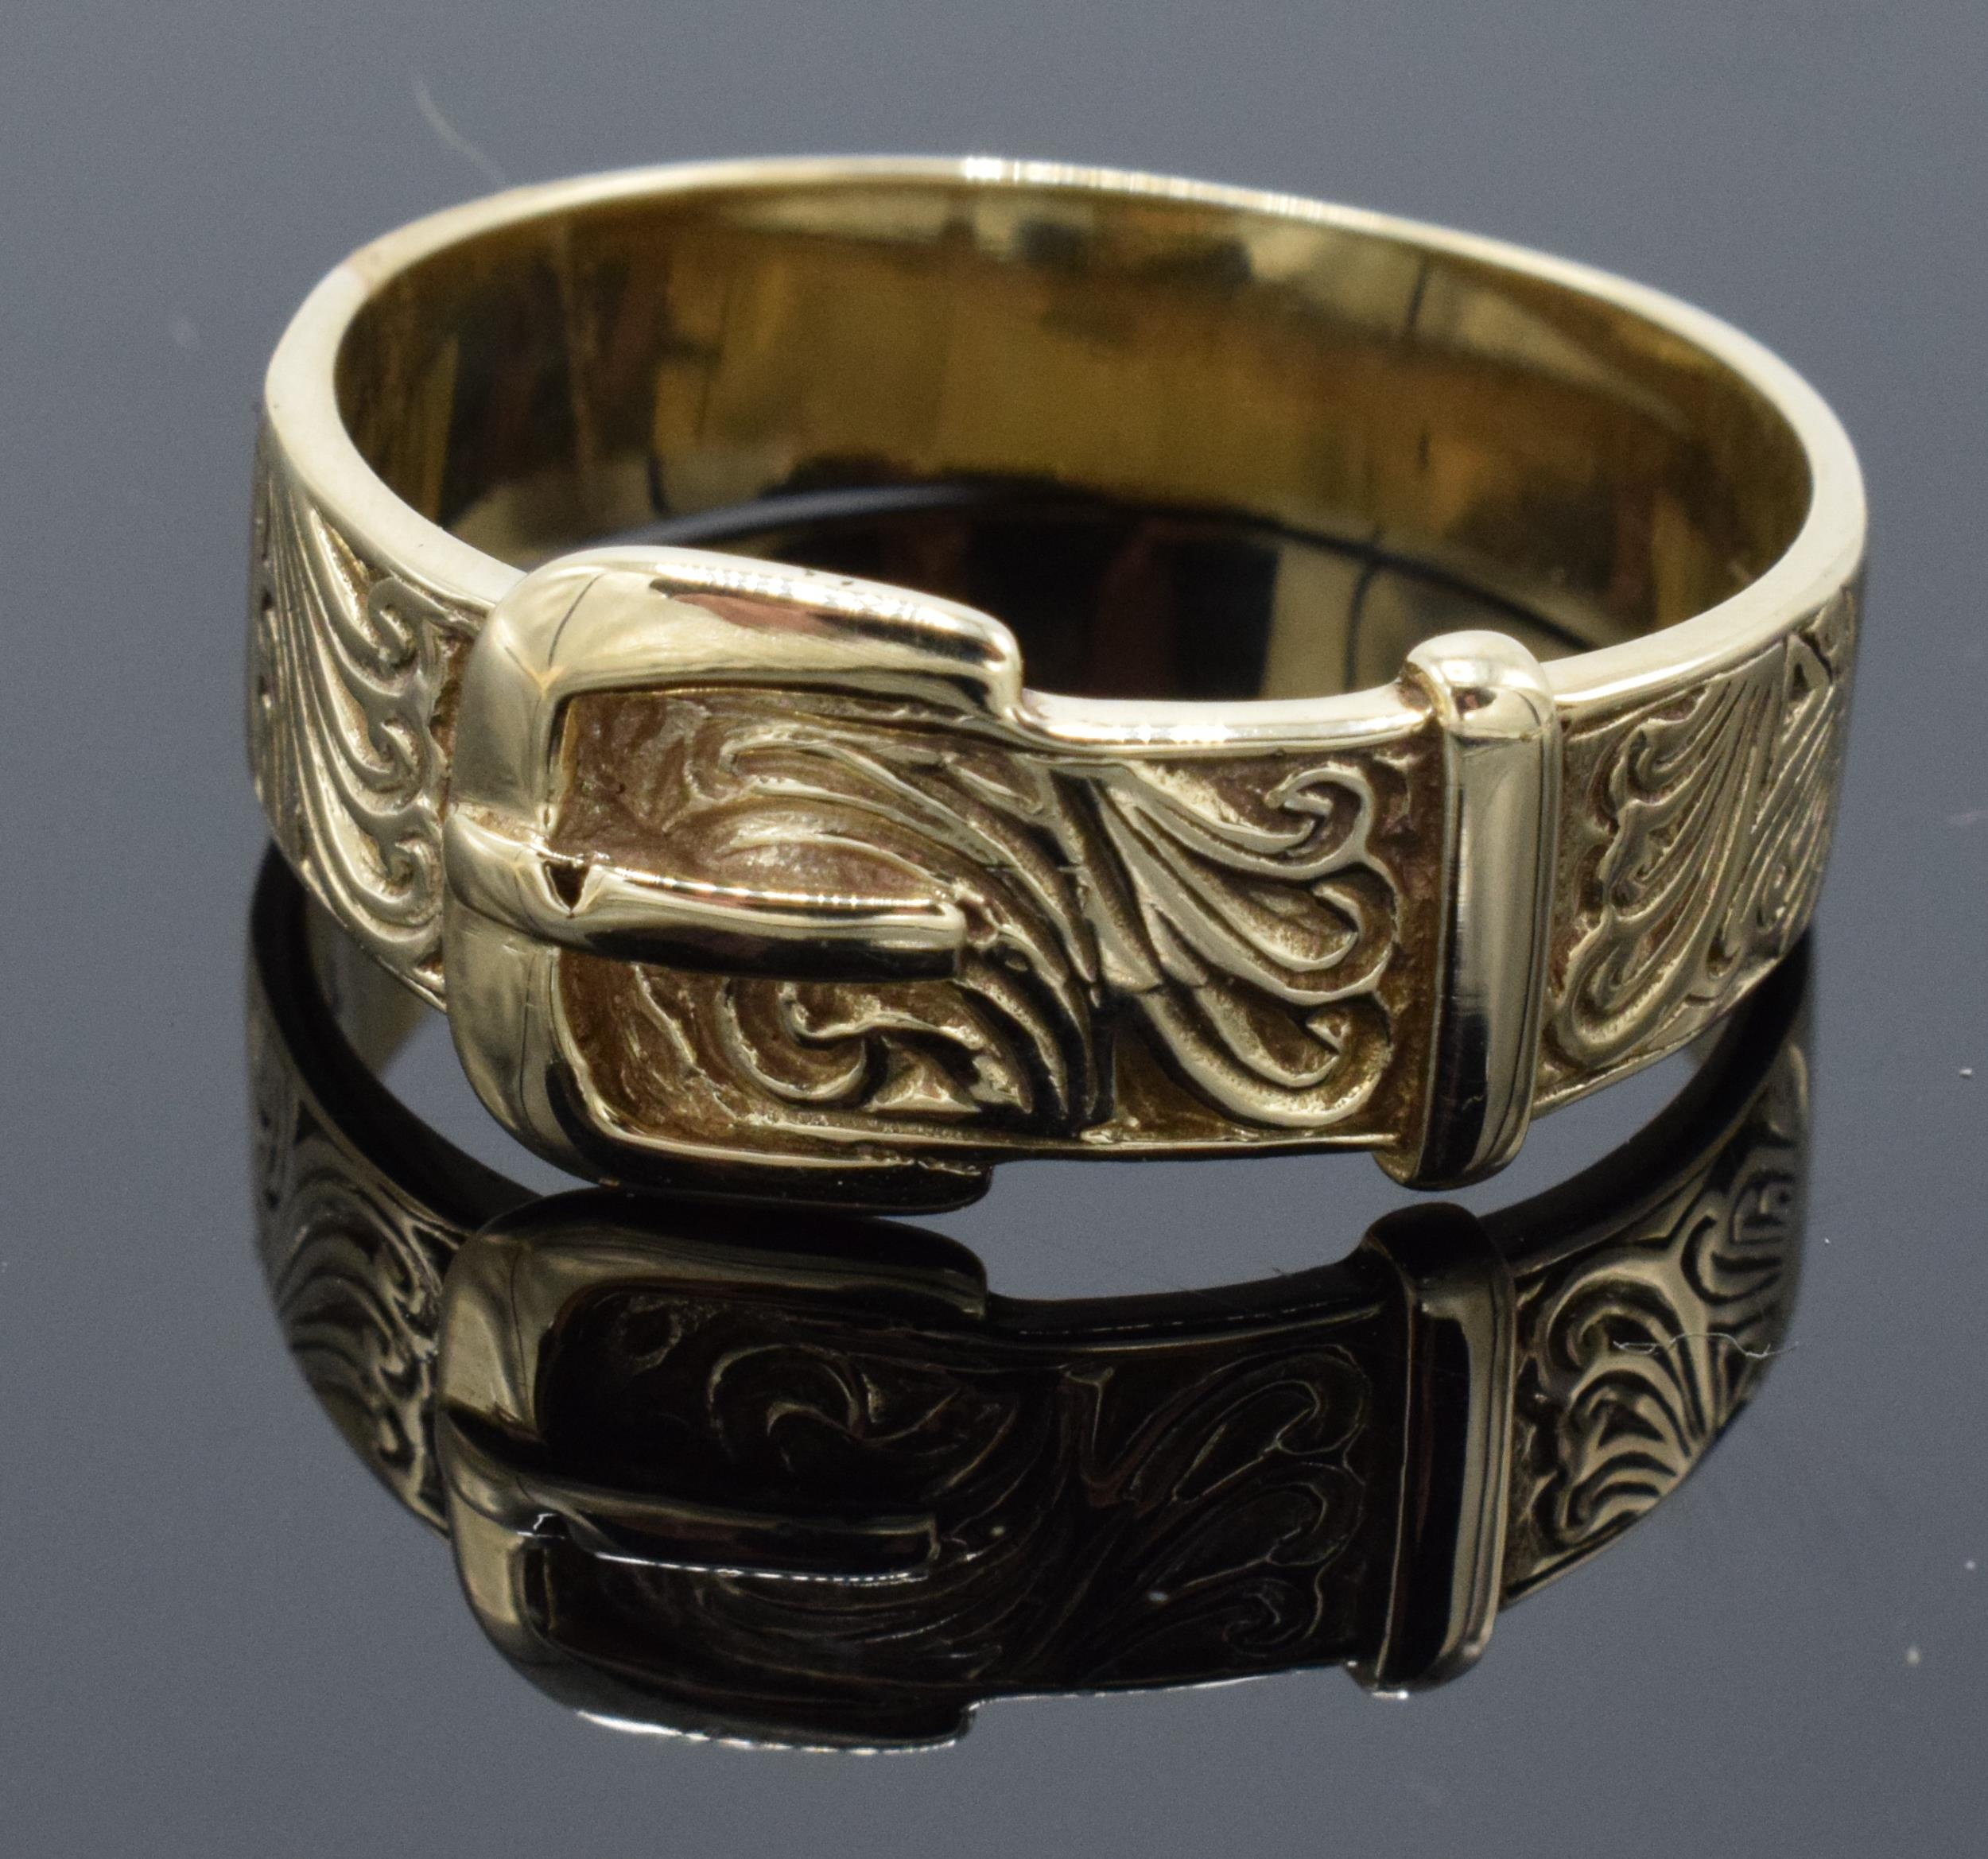 A large Gentlemans 9ct gold ring in the form of a buckle. UK size Z+2. 6.2 grams.